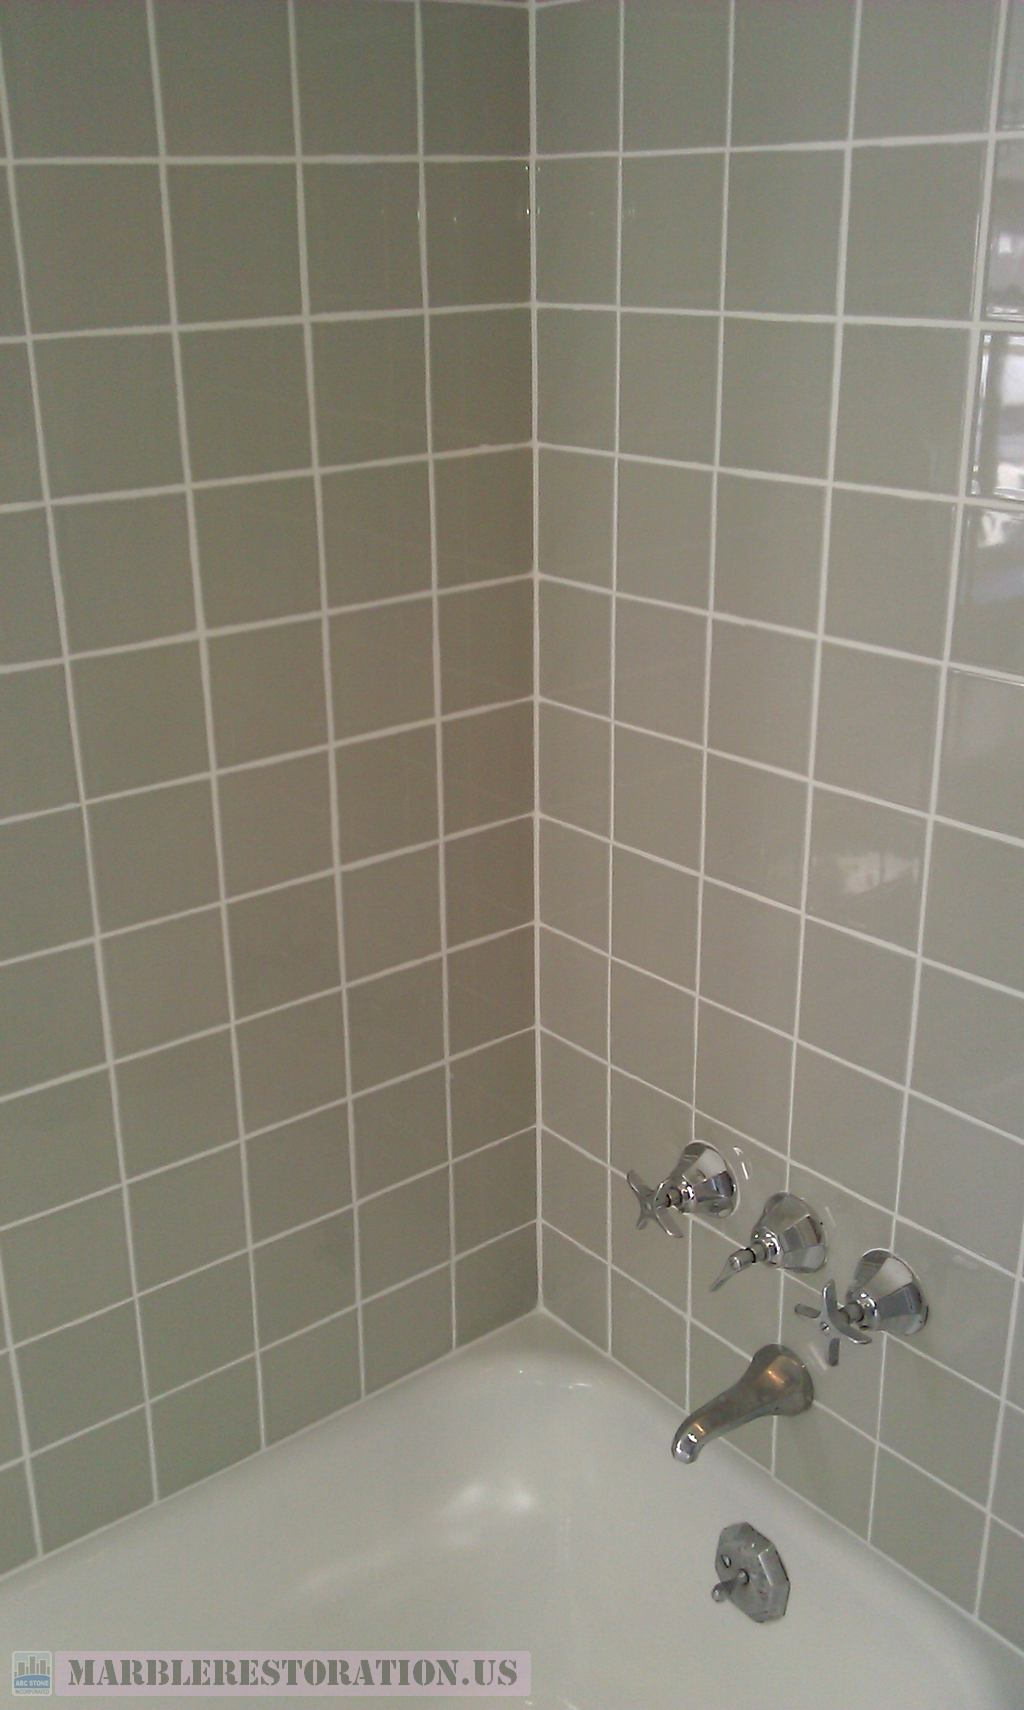 . Ceramic Tiled Walls after Re grouting   Re caulking  ABC Stone Inc